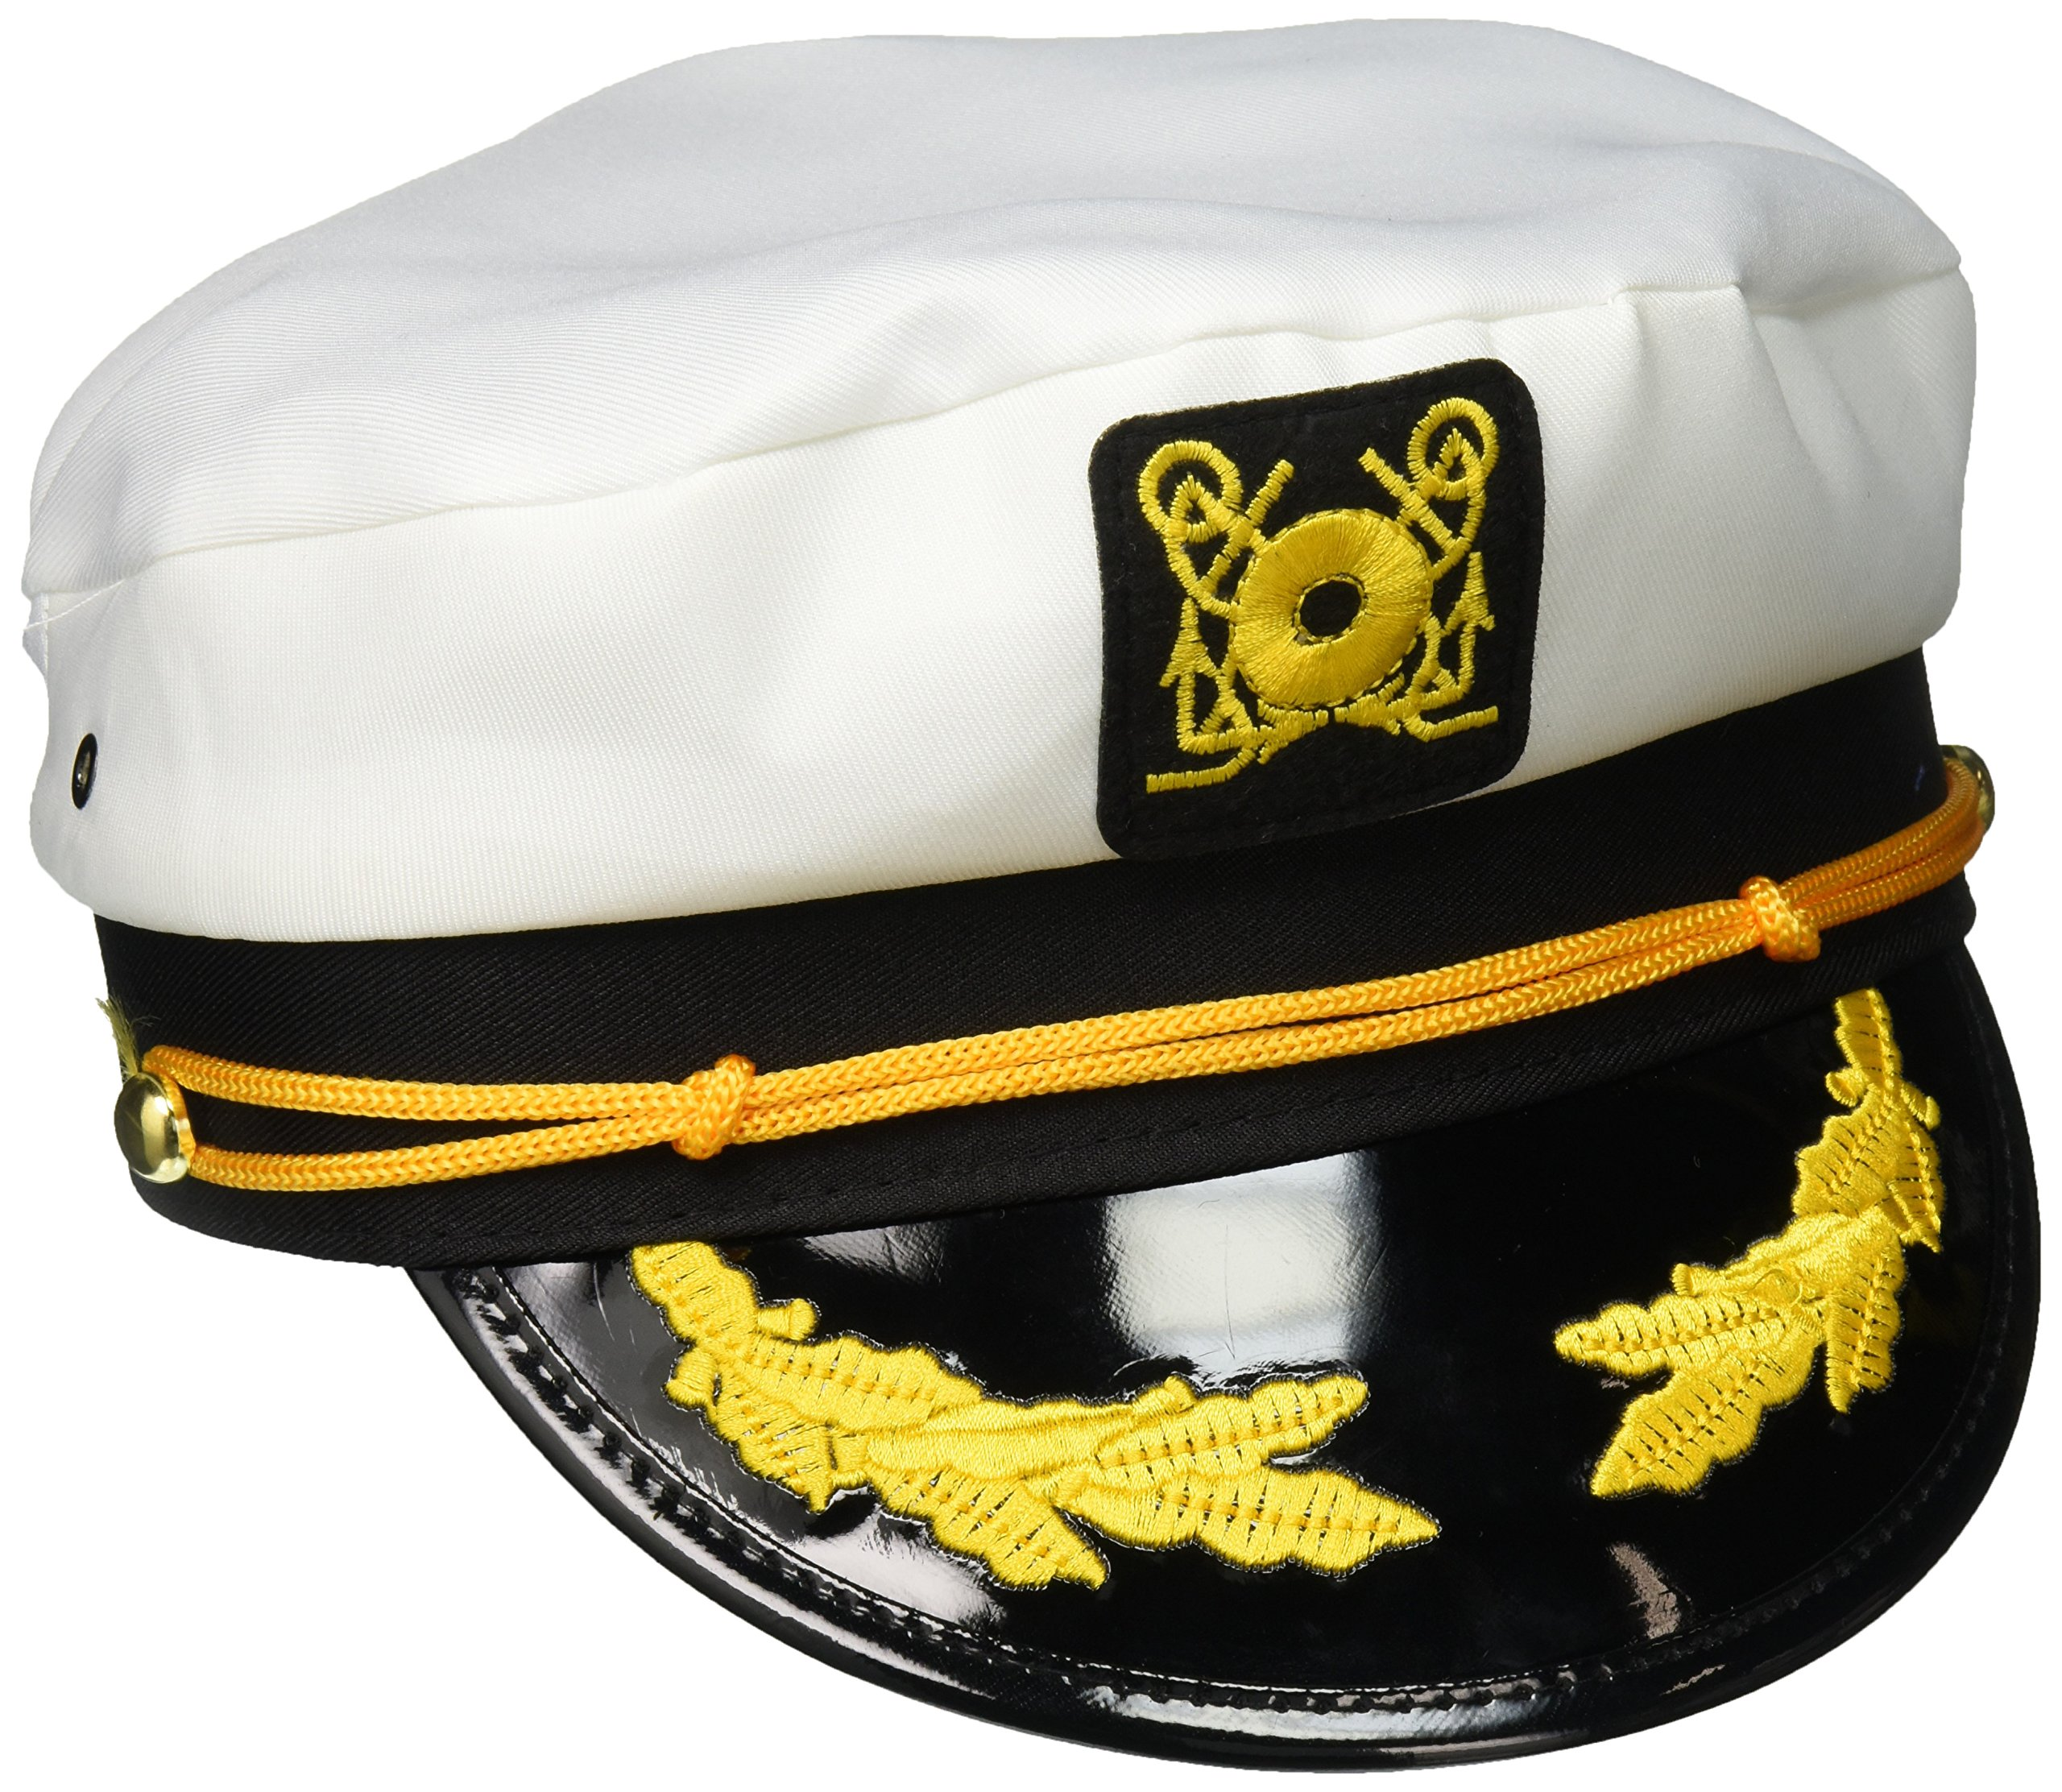 5dace157ef8 Sailor Ship Yacht Boat Captain Hat Navy Marines Admiral White Gold Cap 2  Pack product image